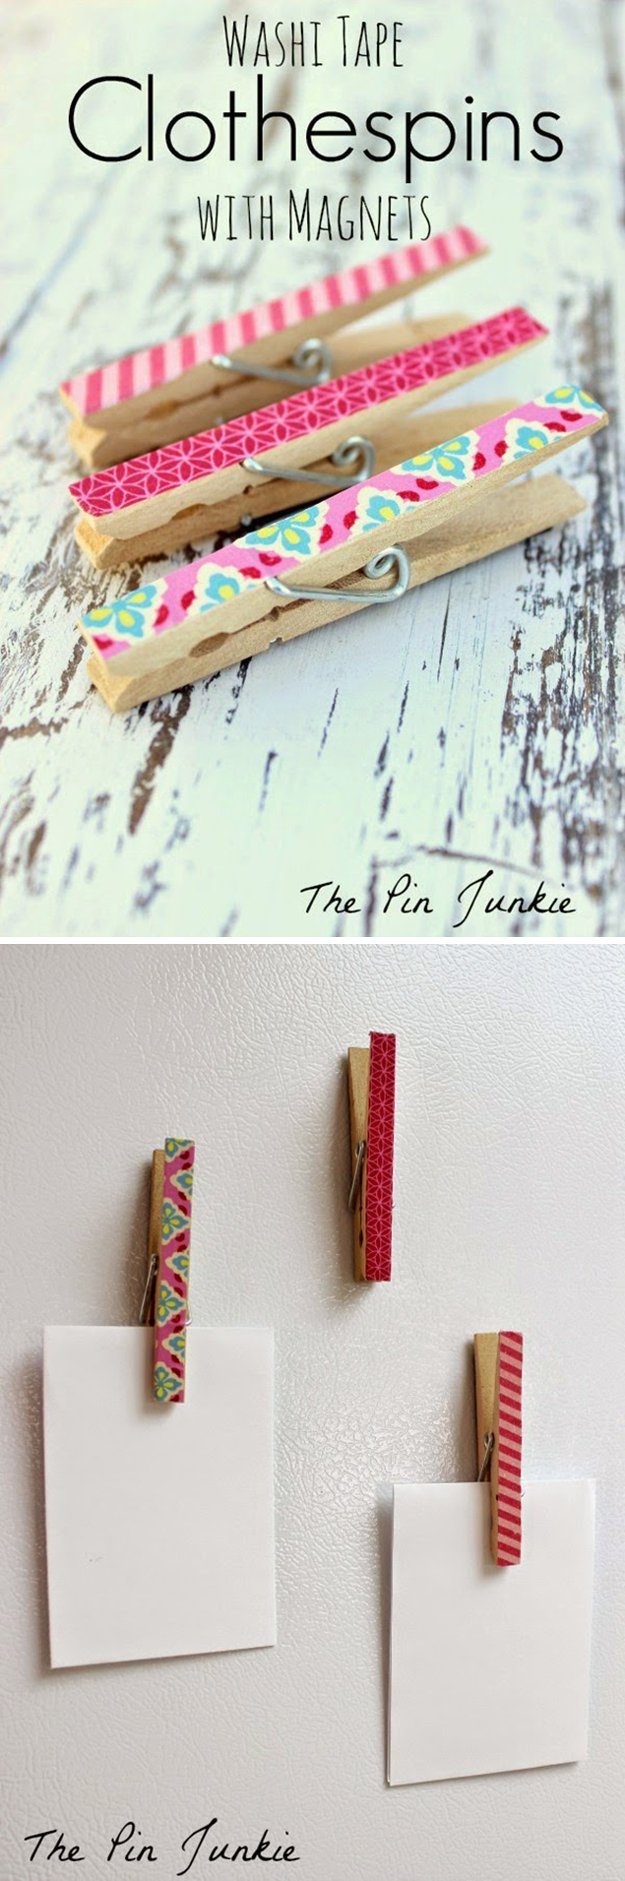 Washi Tape Crafts - Washi Tape Clothespins with Magnets - Wall Art, Frames, Cards, Pencils, Room Decor and DIY Gifts, Back To School Supplies - Creative, Fun Craft Ideas for Teens, Tweens and Teenagers - Step by Step Tutorials and Instructions #washitape #crafts #cheapcrafts #teencrafts